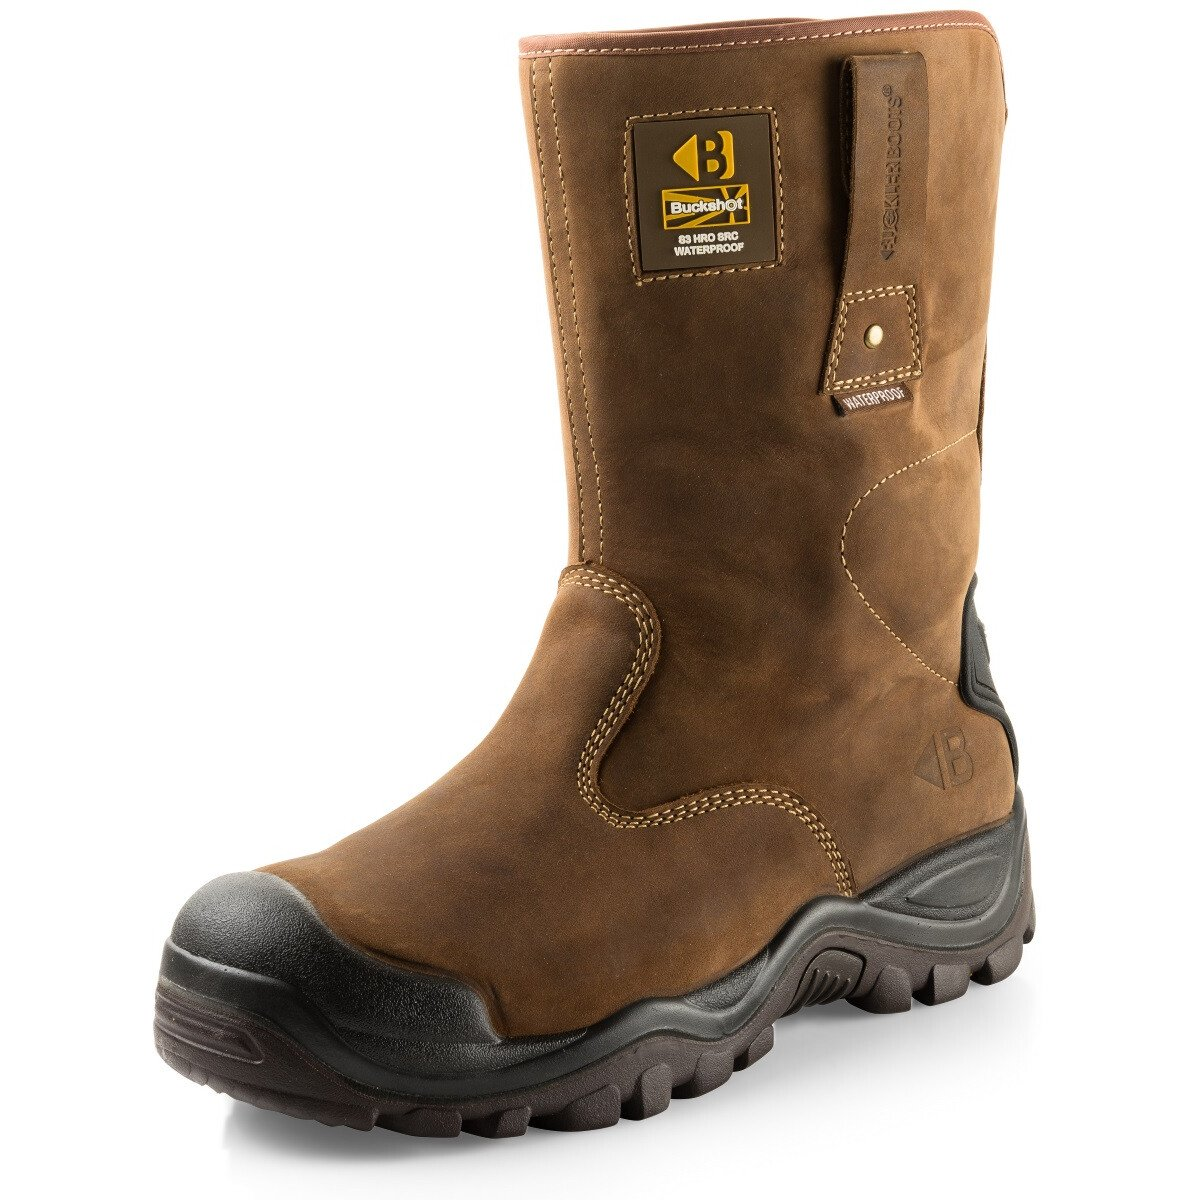 Buckler Boots BSH010BR Brown Buckshot 2 Safety Rigger Boot S3 HRO WRU SRC